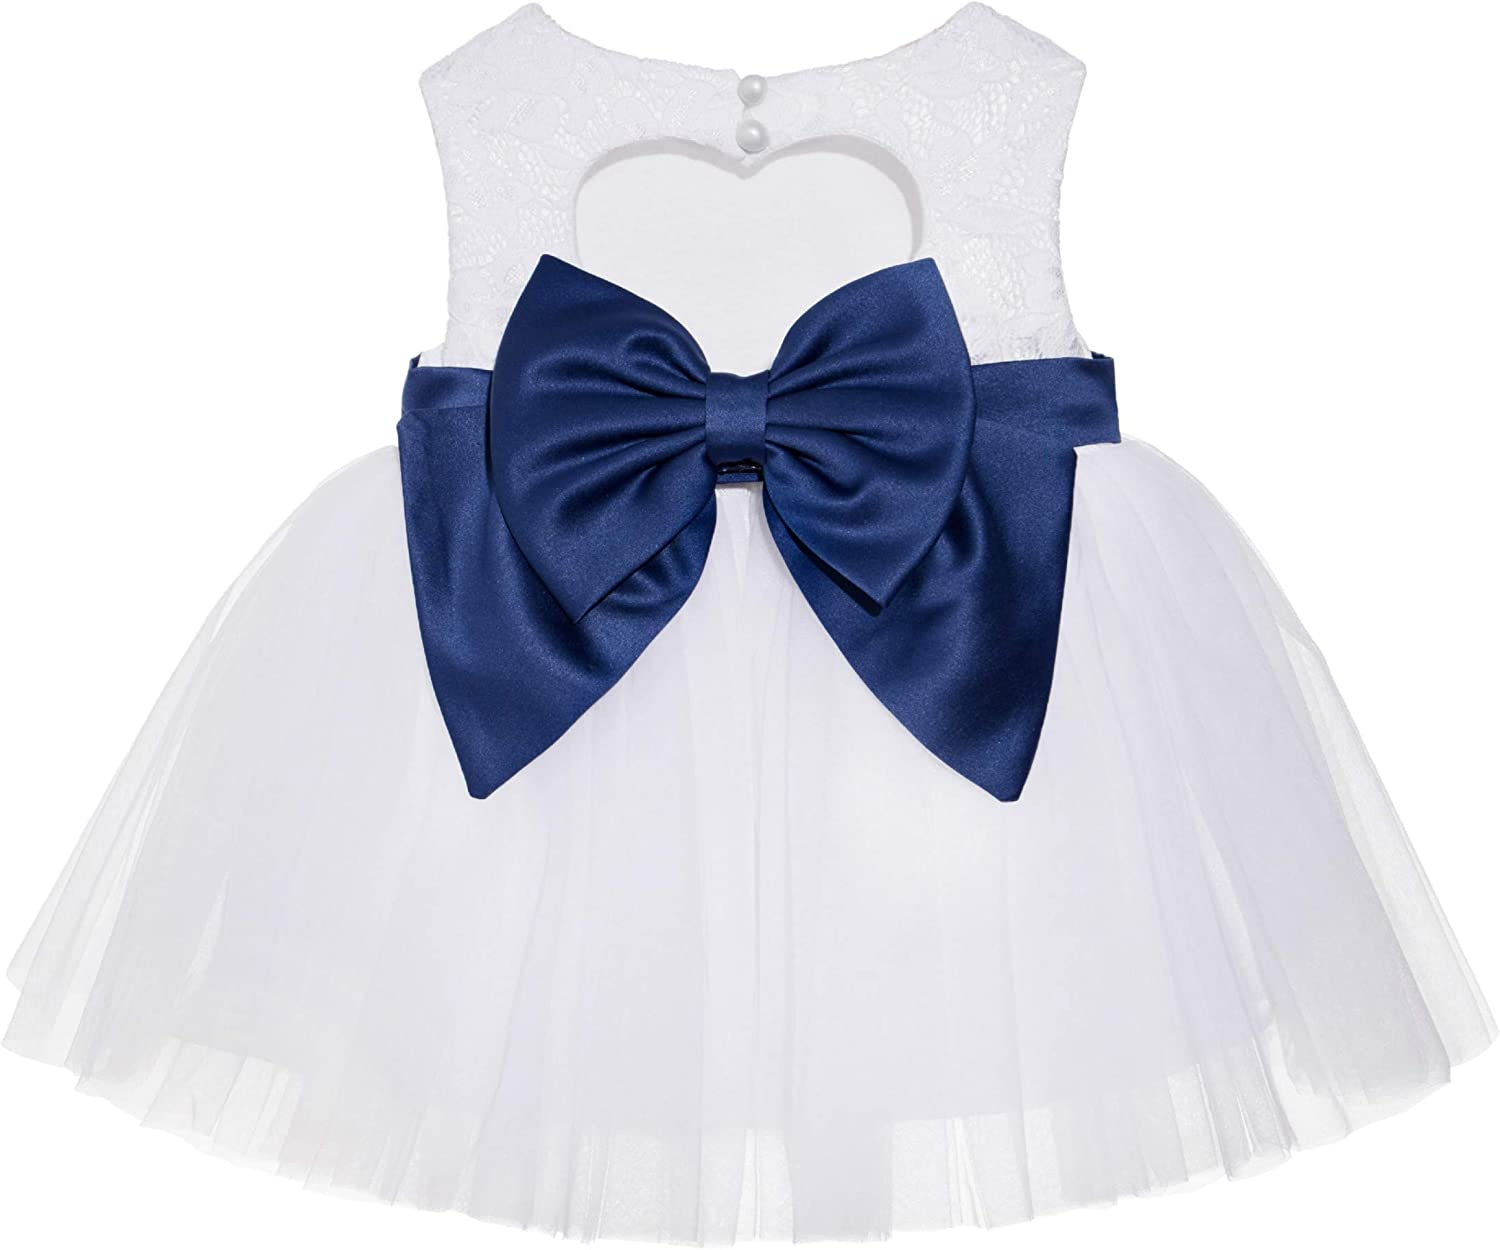 White Lace Heart Cutout Flower Girl Dress Special Occasions Pageant Gown BB1